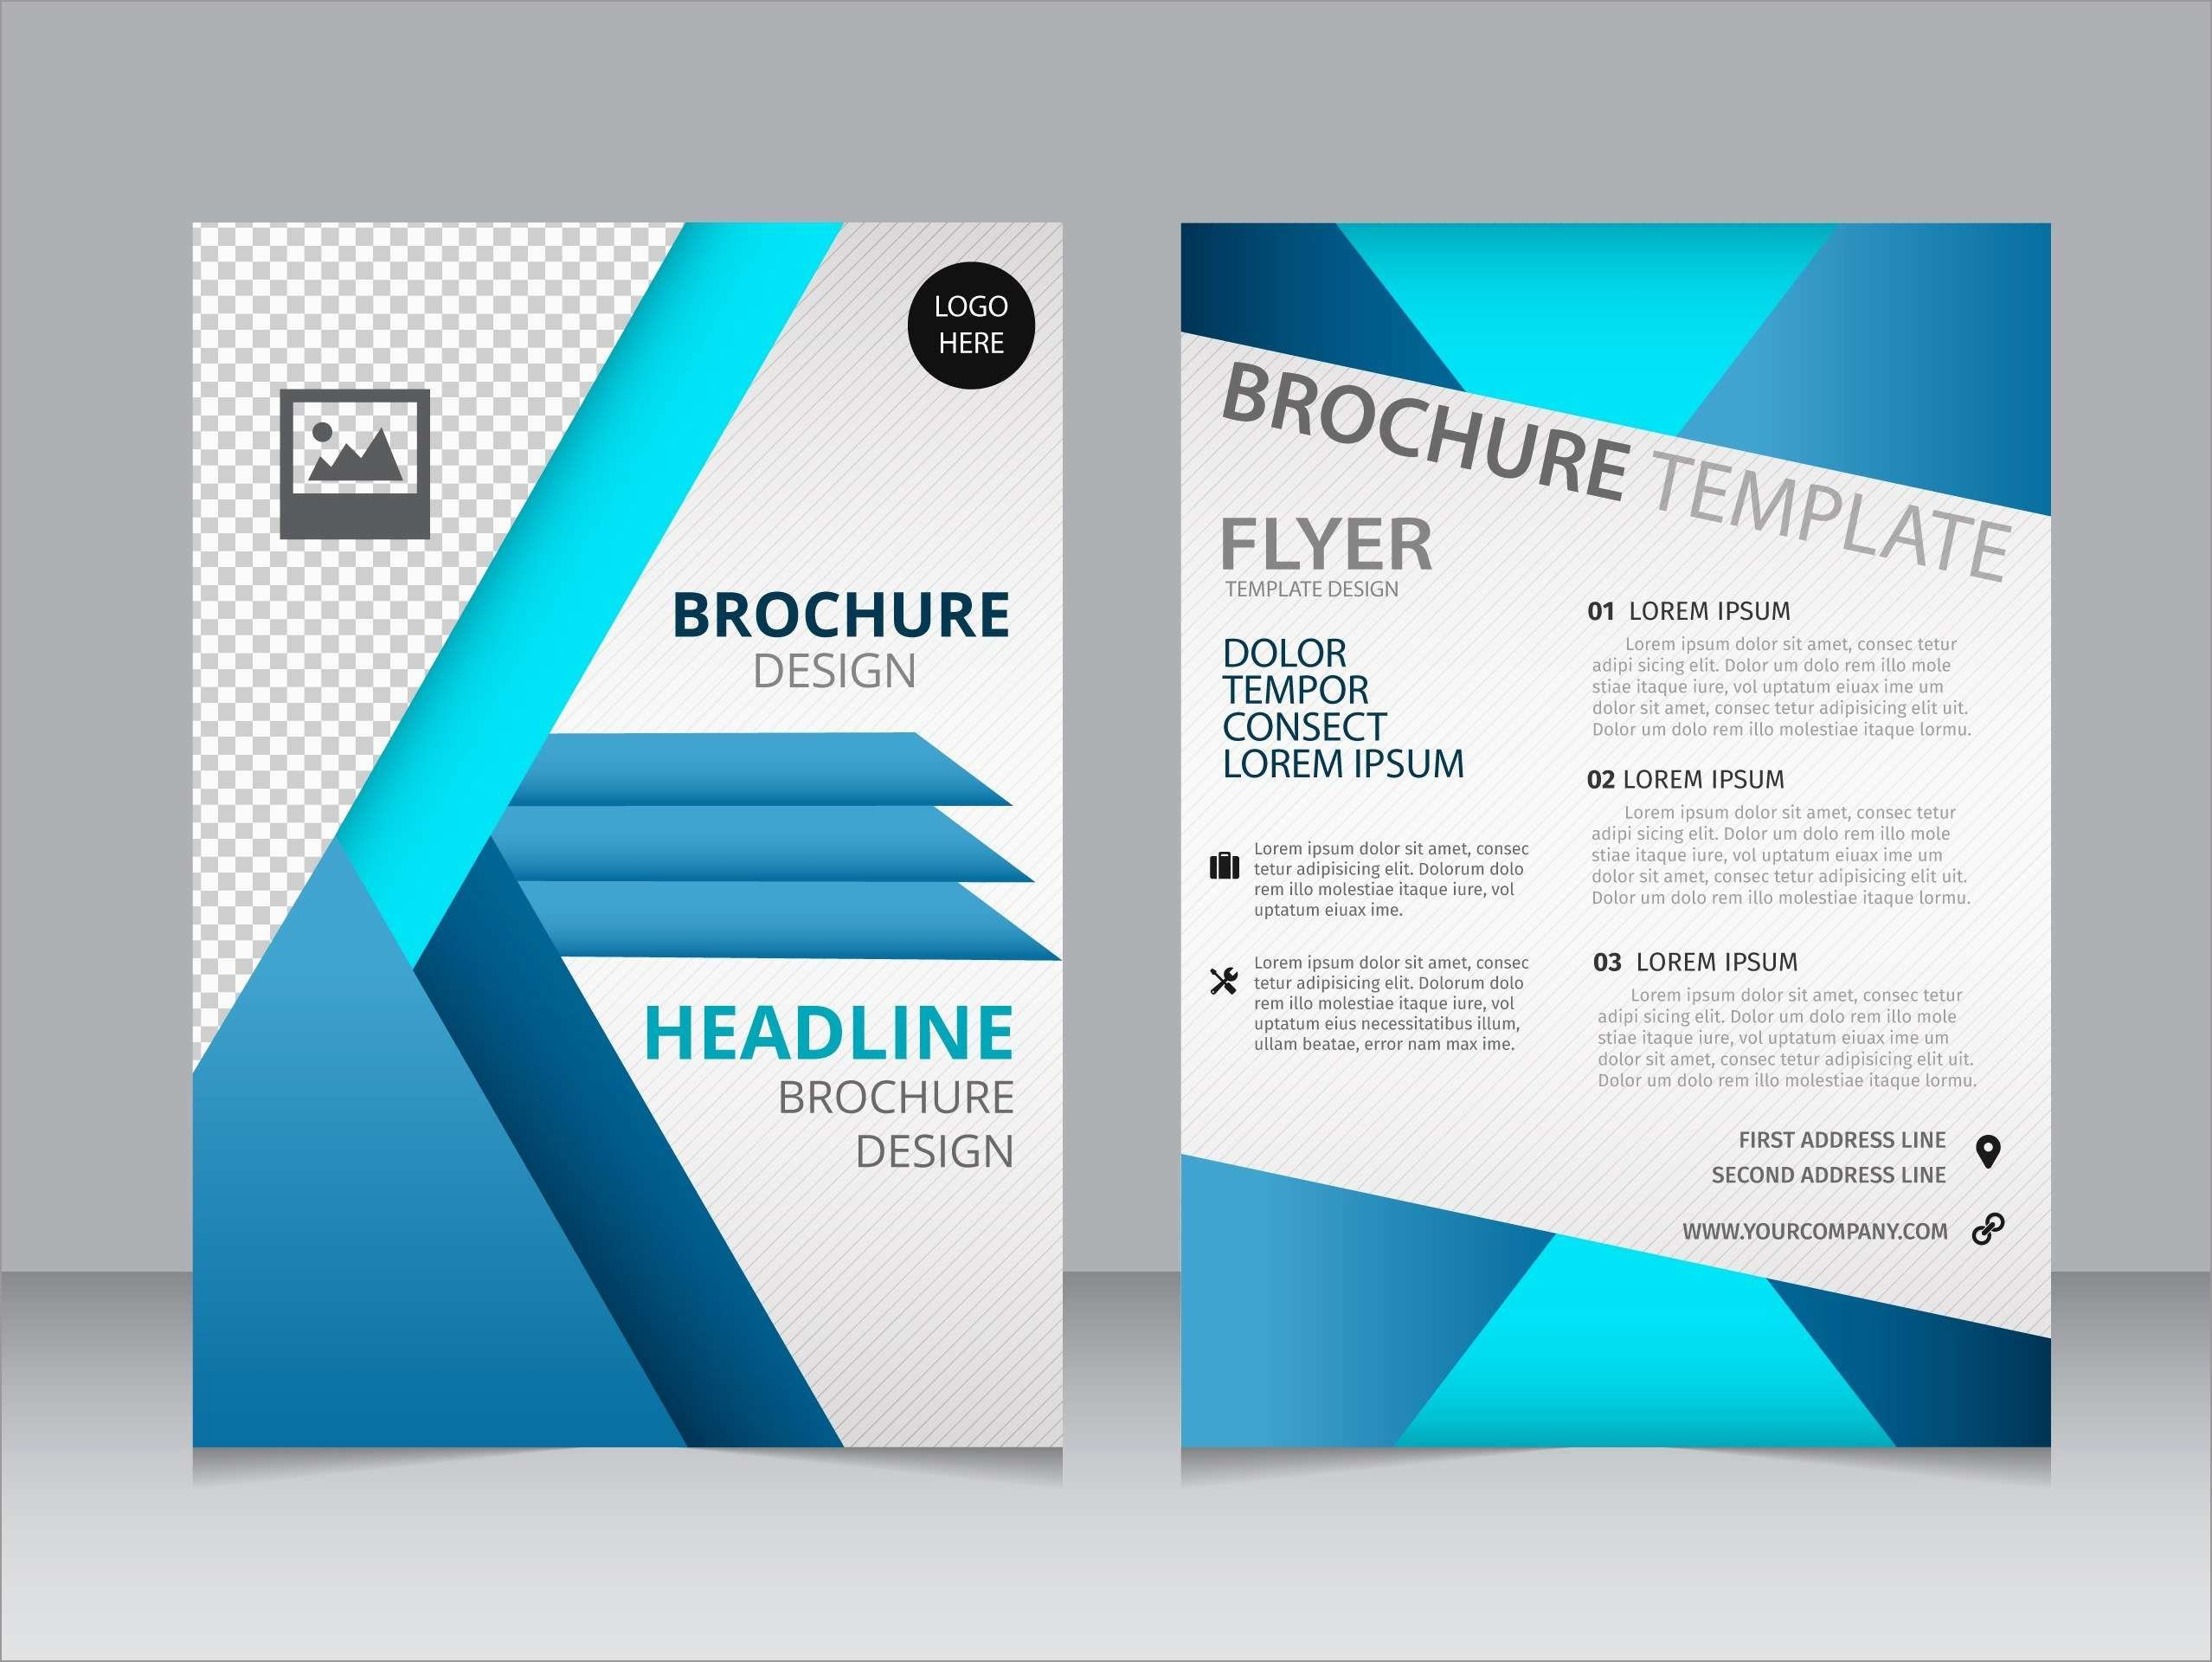 Awesome Template For Brochure Design Free Download  Best Of Template Throughout Creative Brochure Templates Free Download